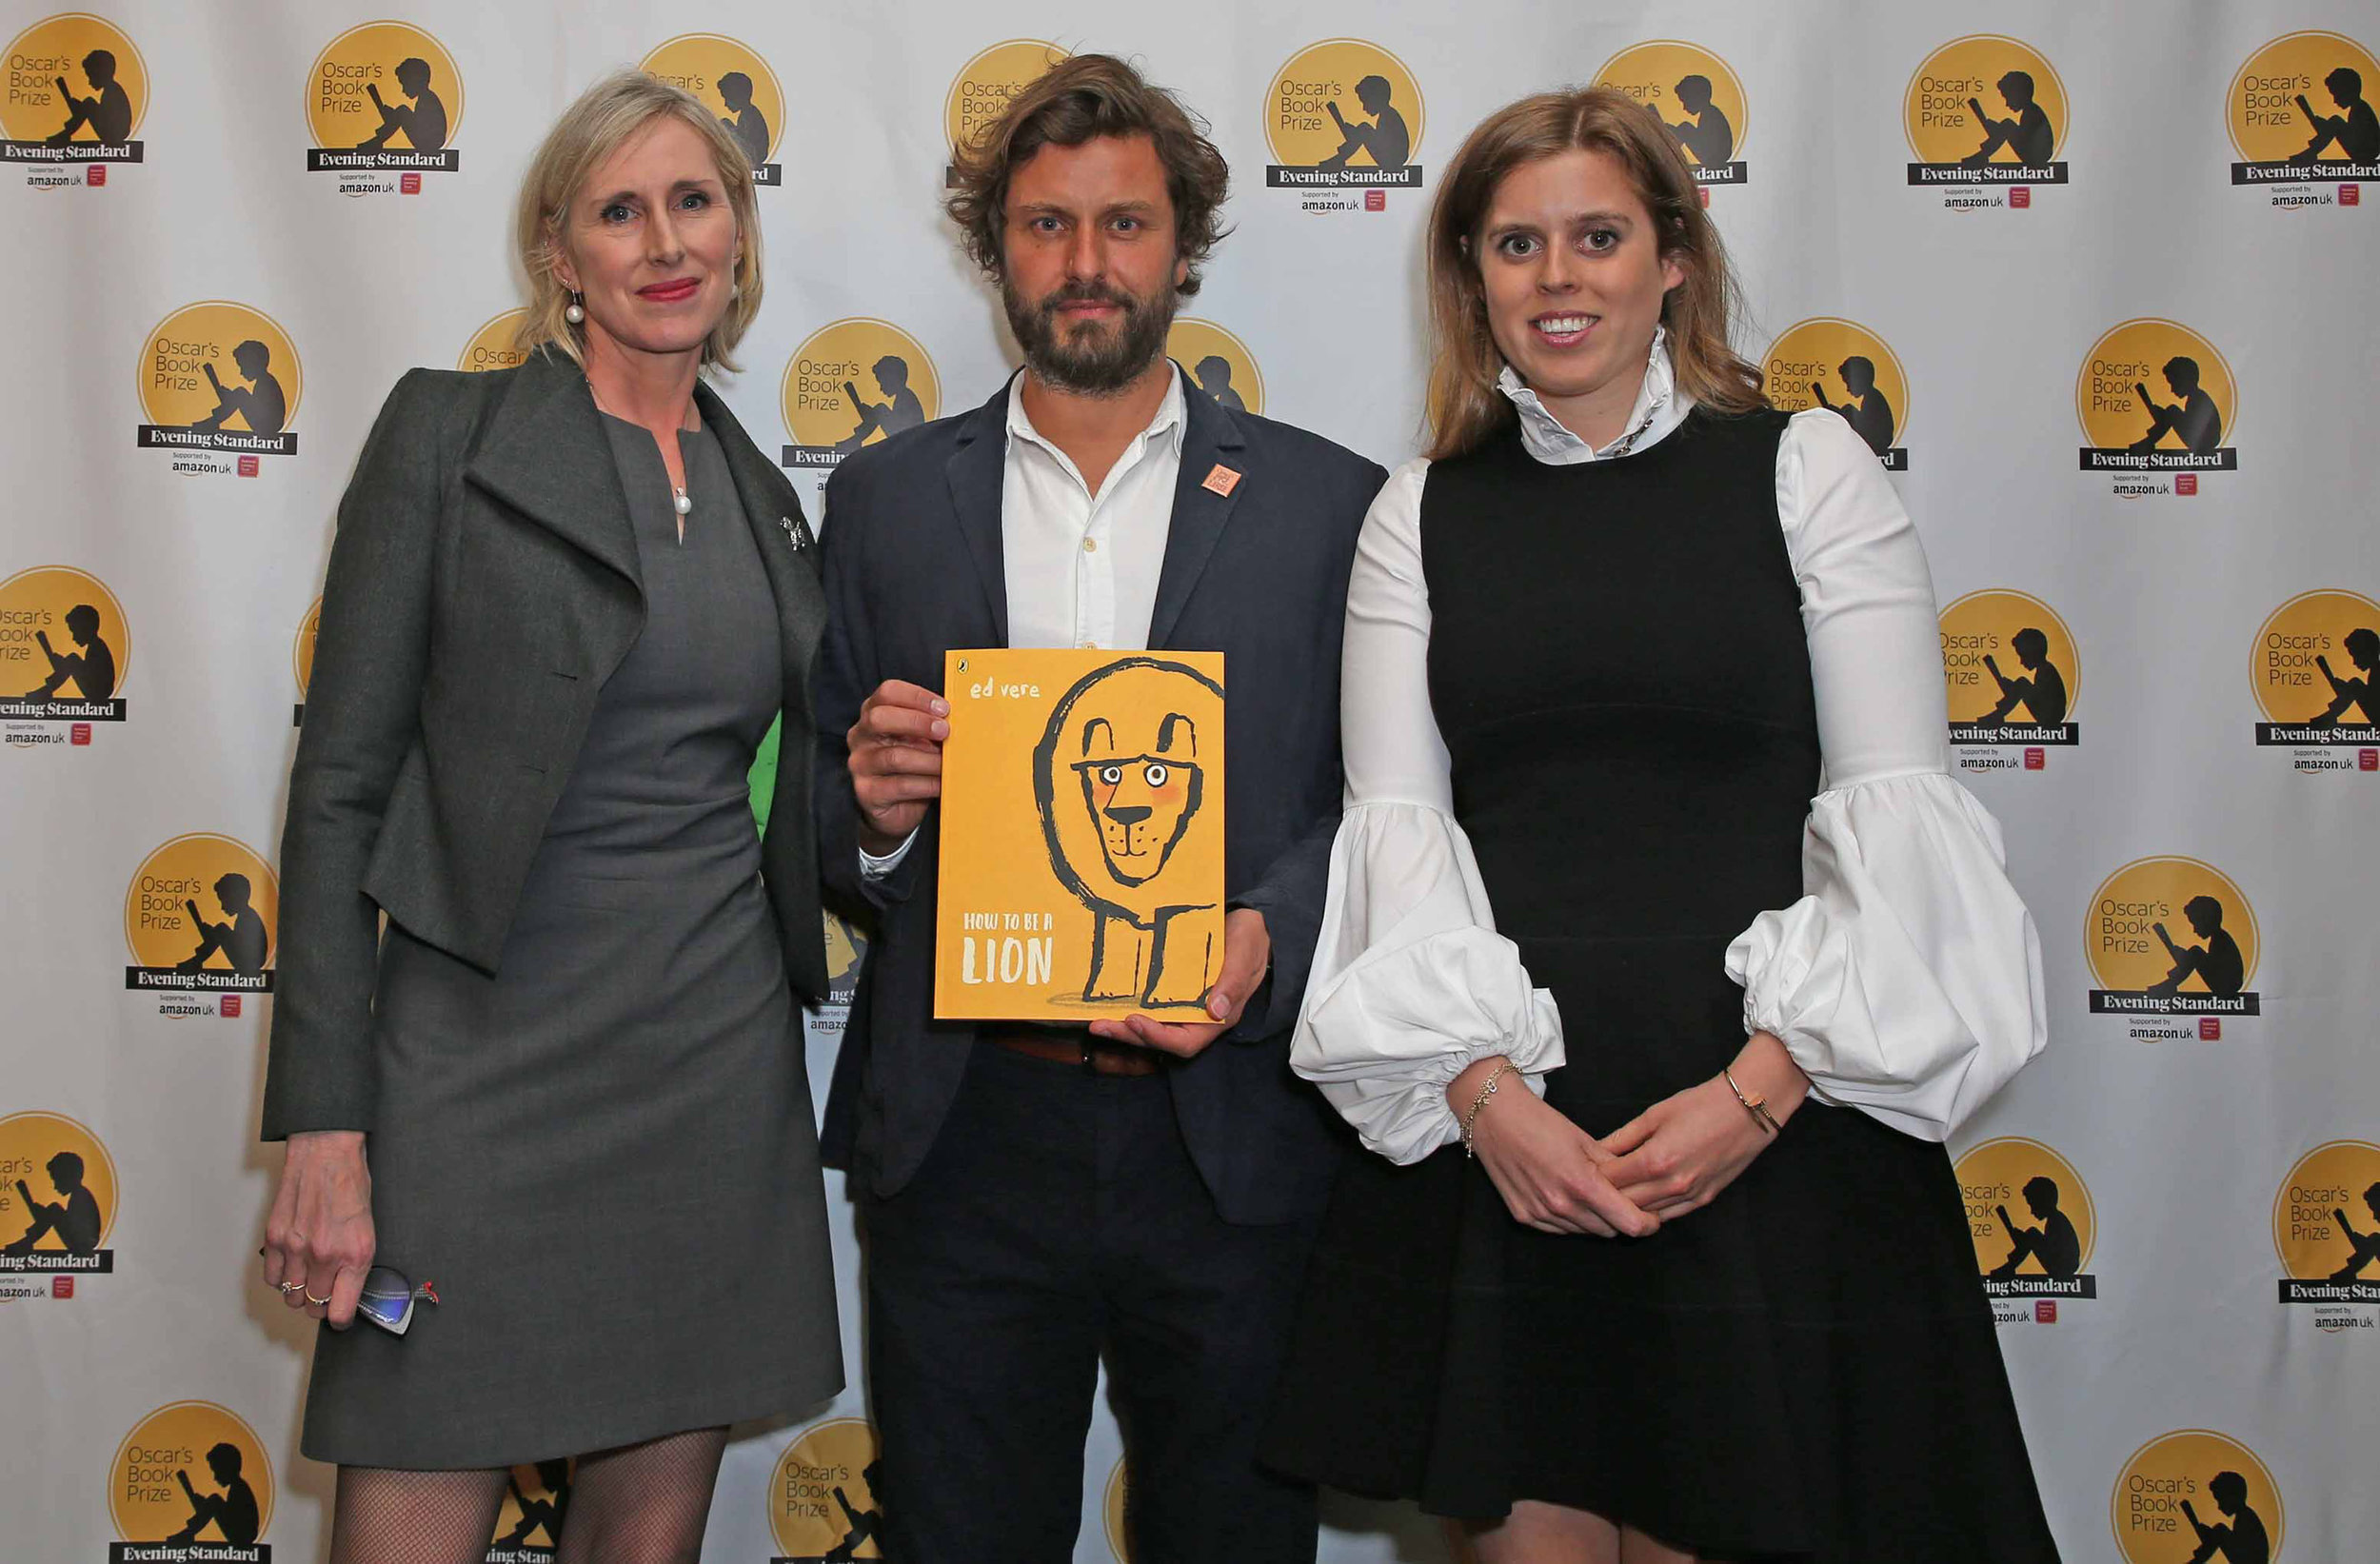 Children's Laureate Lauren Child; 2019 winner of Oscar's Book Prize, Ed Vere, and Oscar's Book Prize Royal Patron, HRH Princess Beatrice. Photography: Nigel Howard Media